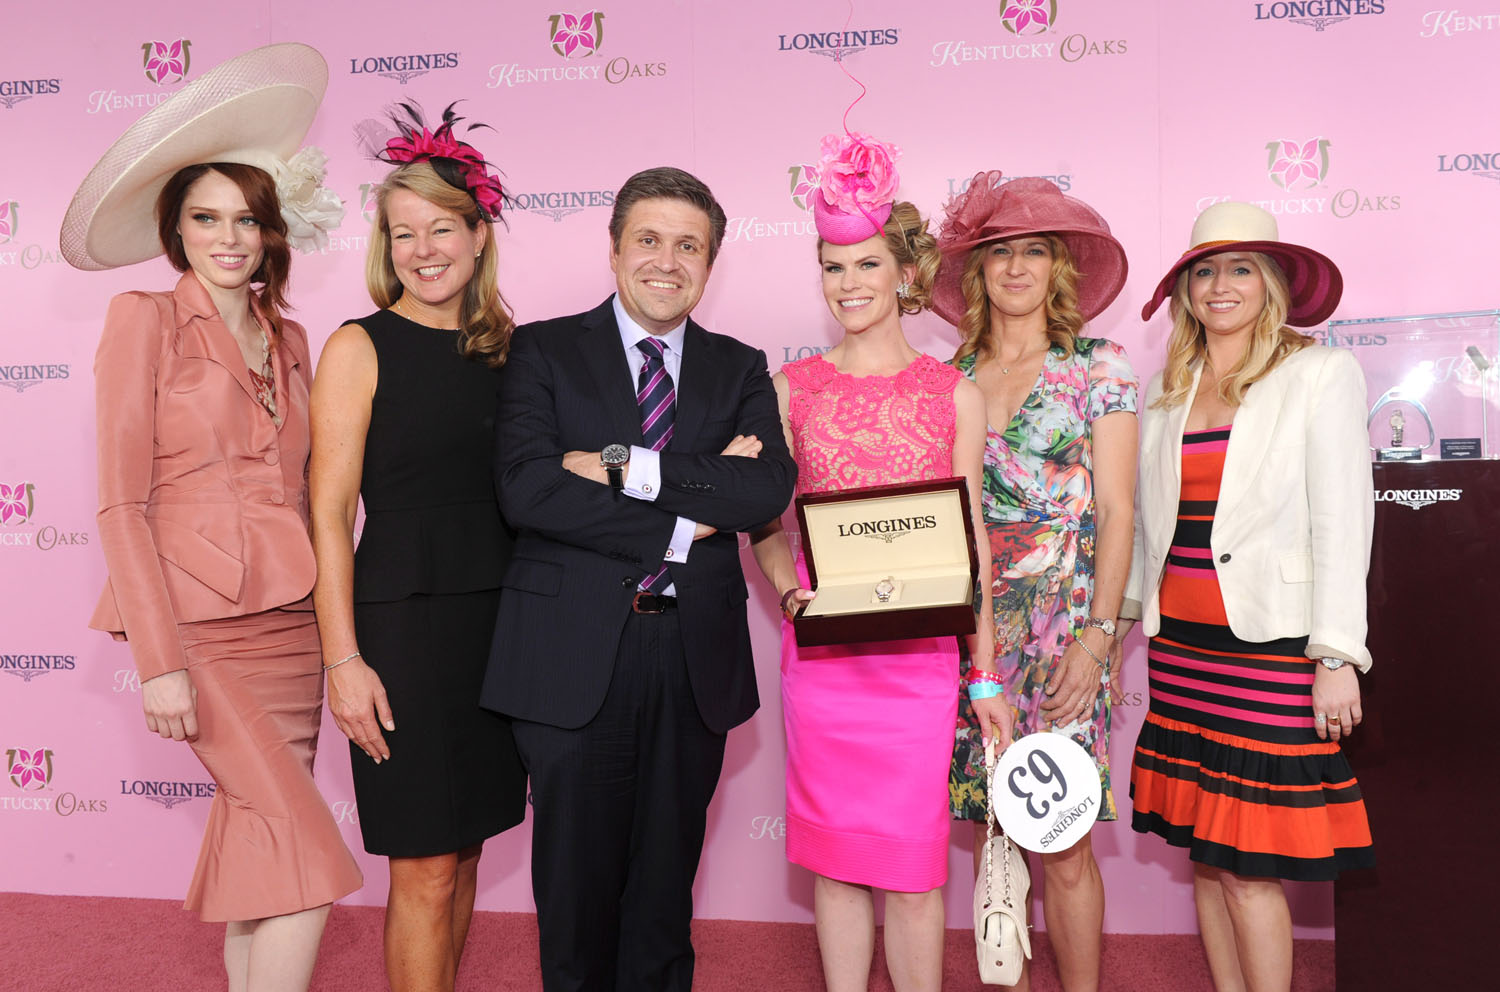 Kentucky Derby 2013. Model Coco Rocha, Jennifer Judkins, Juan-Carlos Capelli, Suzy Buckley Woodward, Stefanie Graf, Joyann King